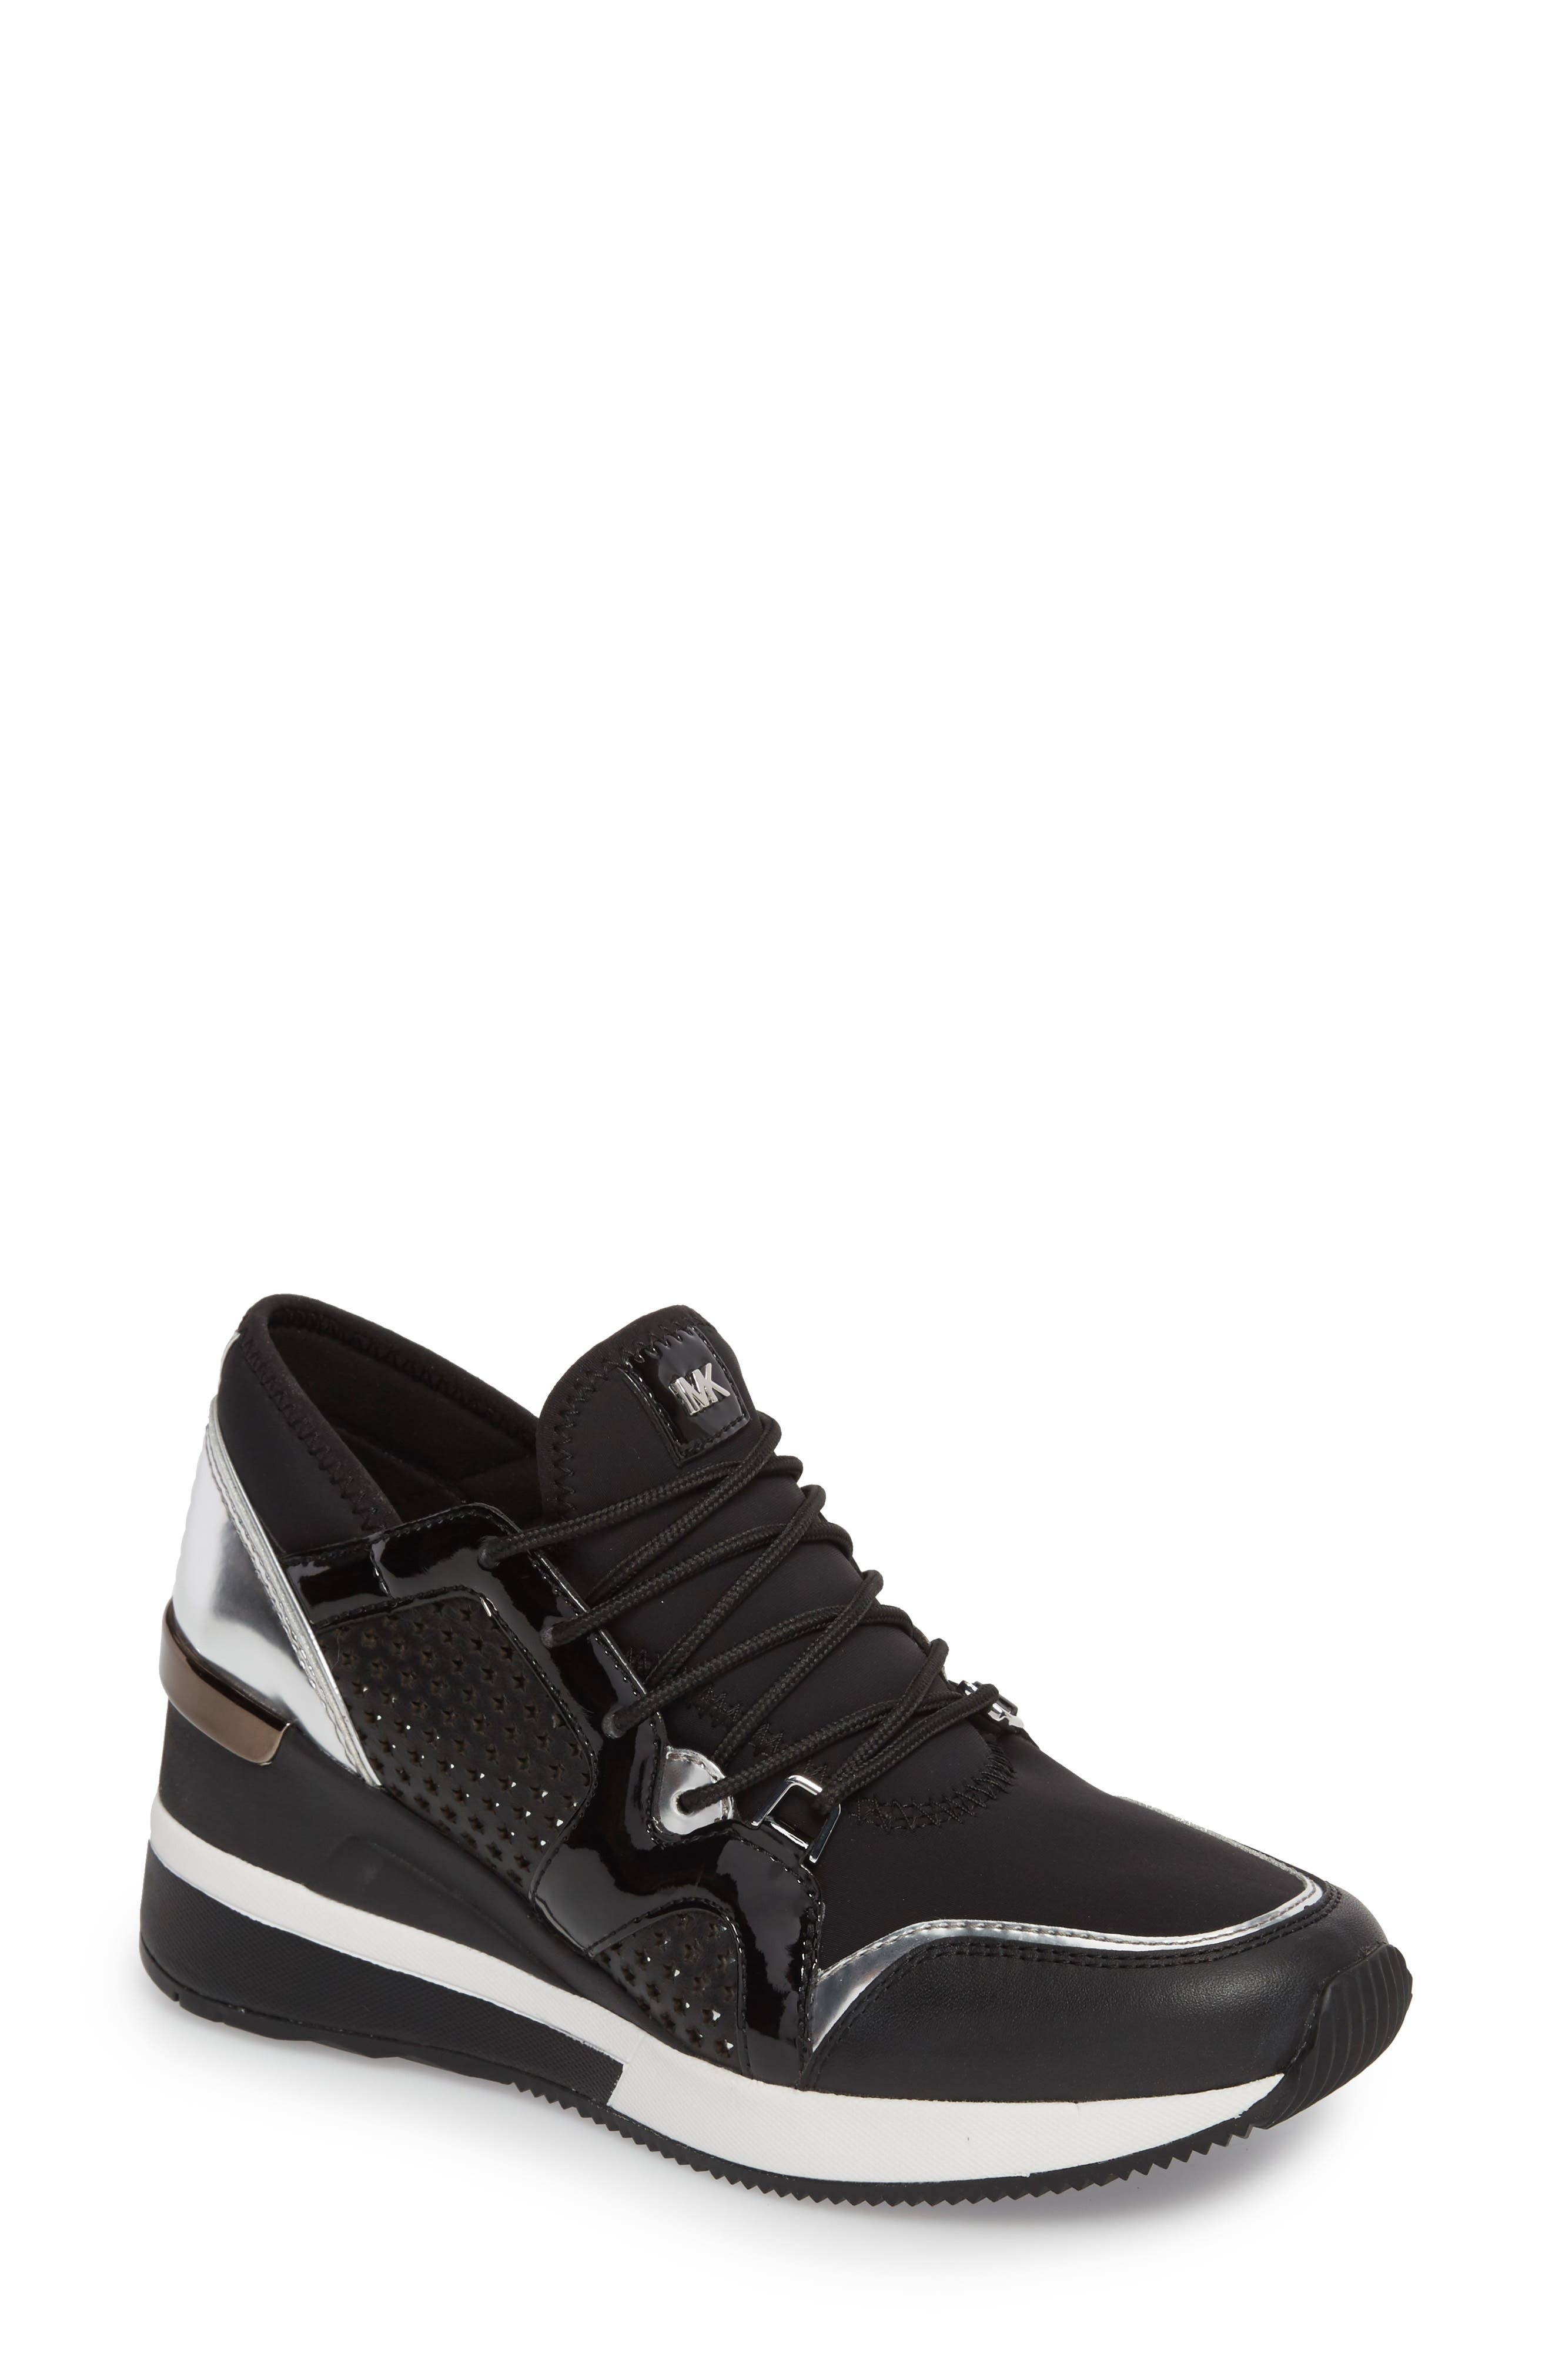 Scout Wedge Sneaker,                         Main,                         color,